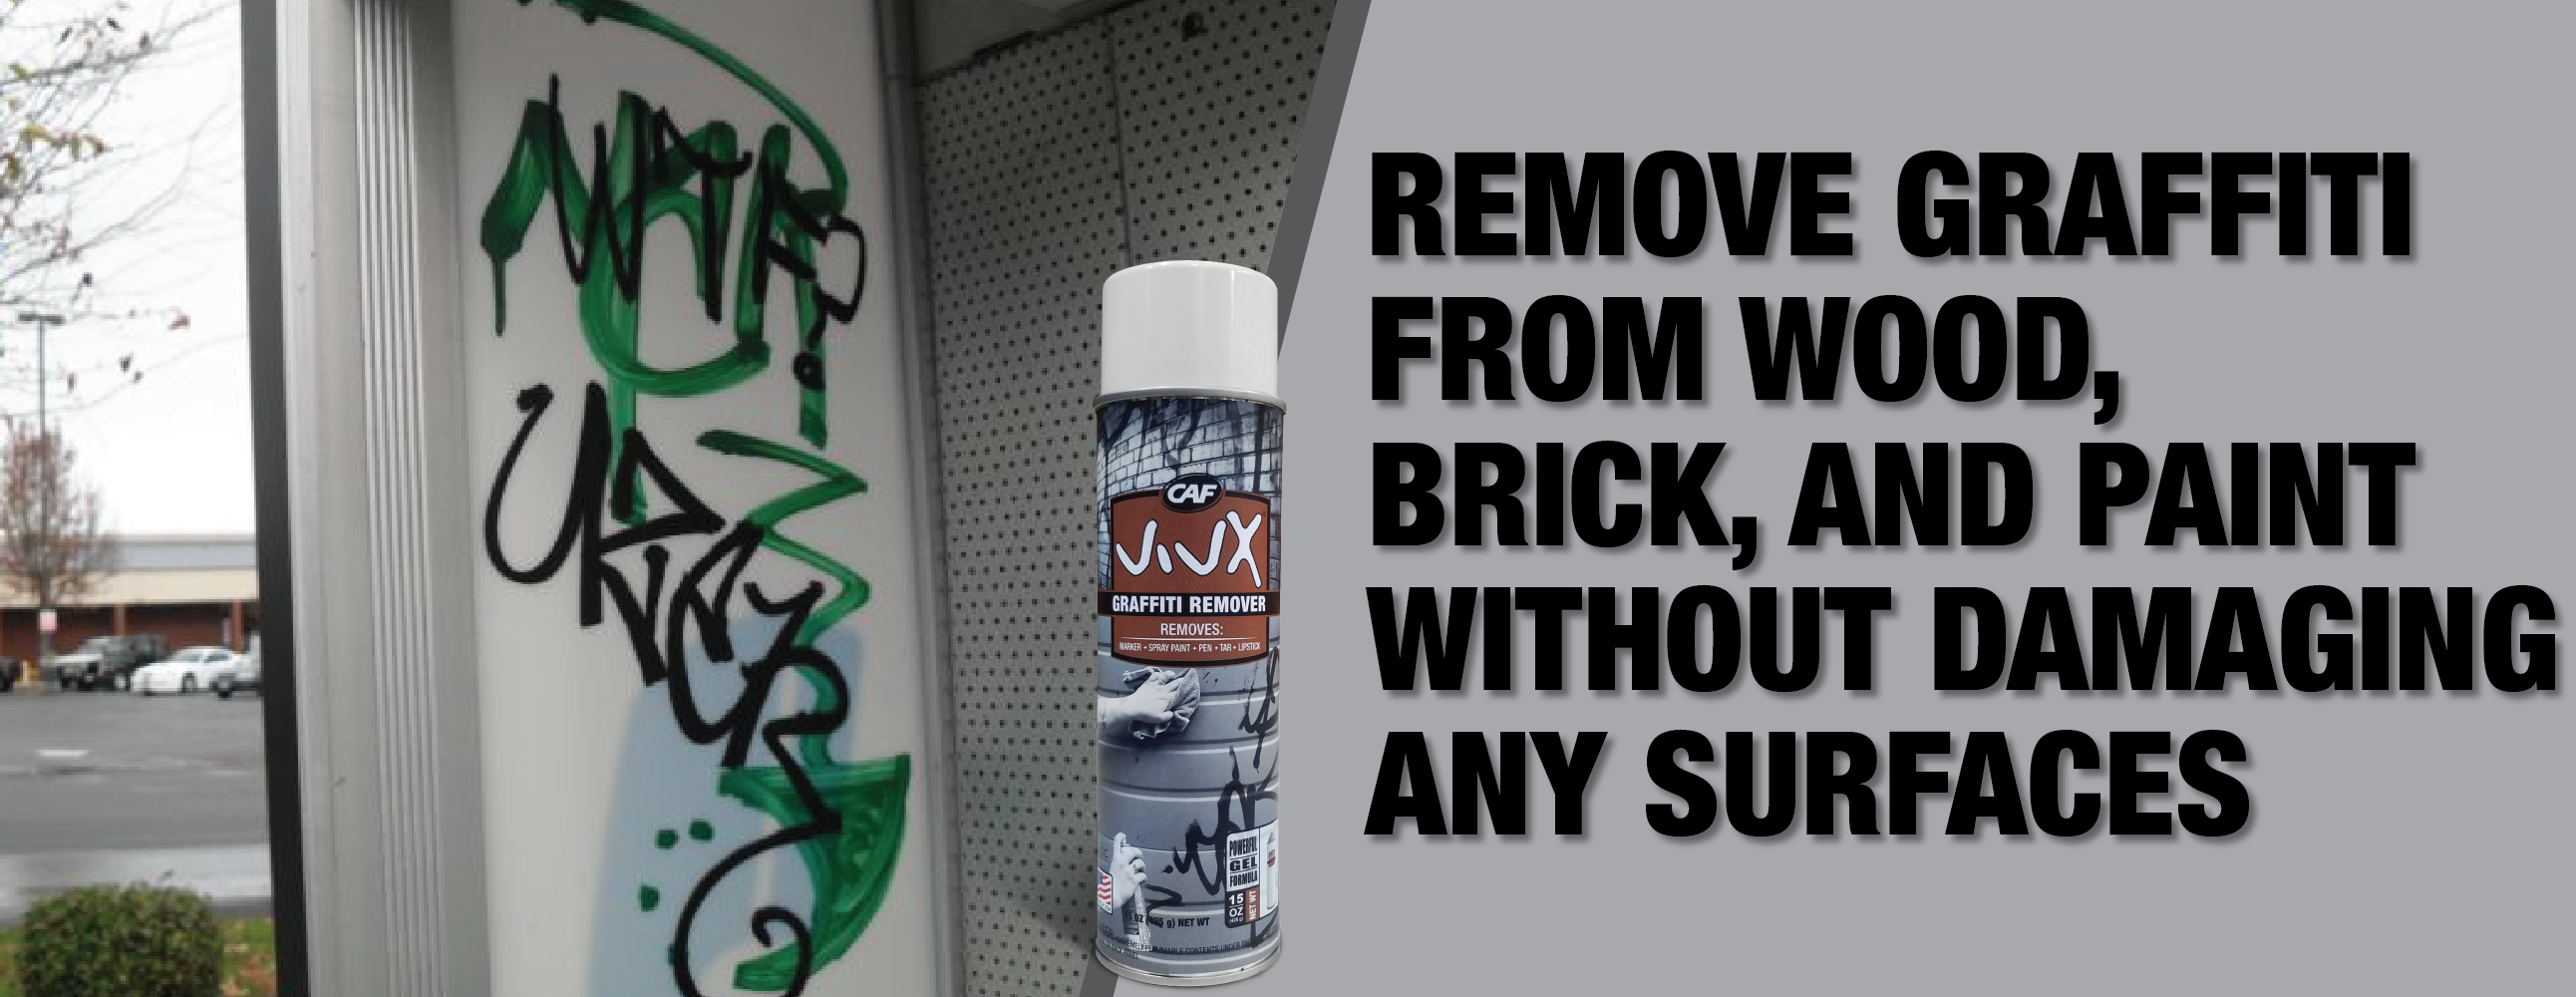 How to Remove Graffiti from a Fuel Dispenser